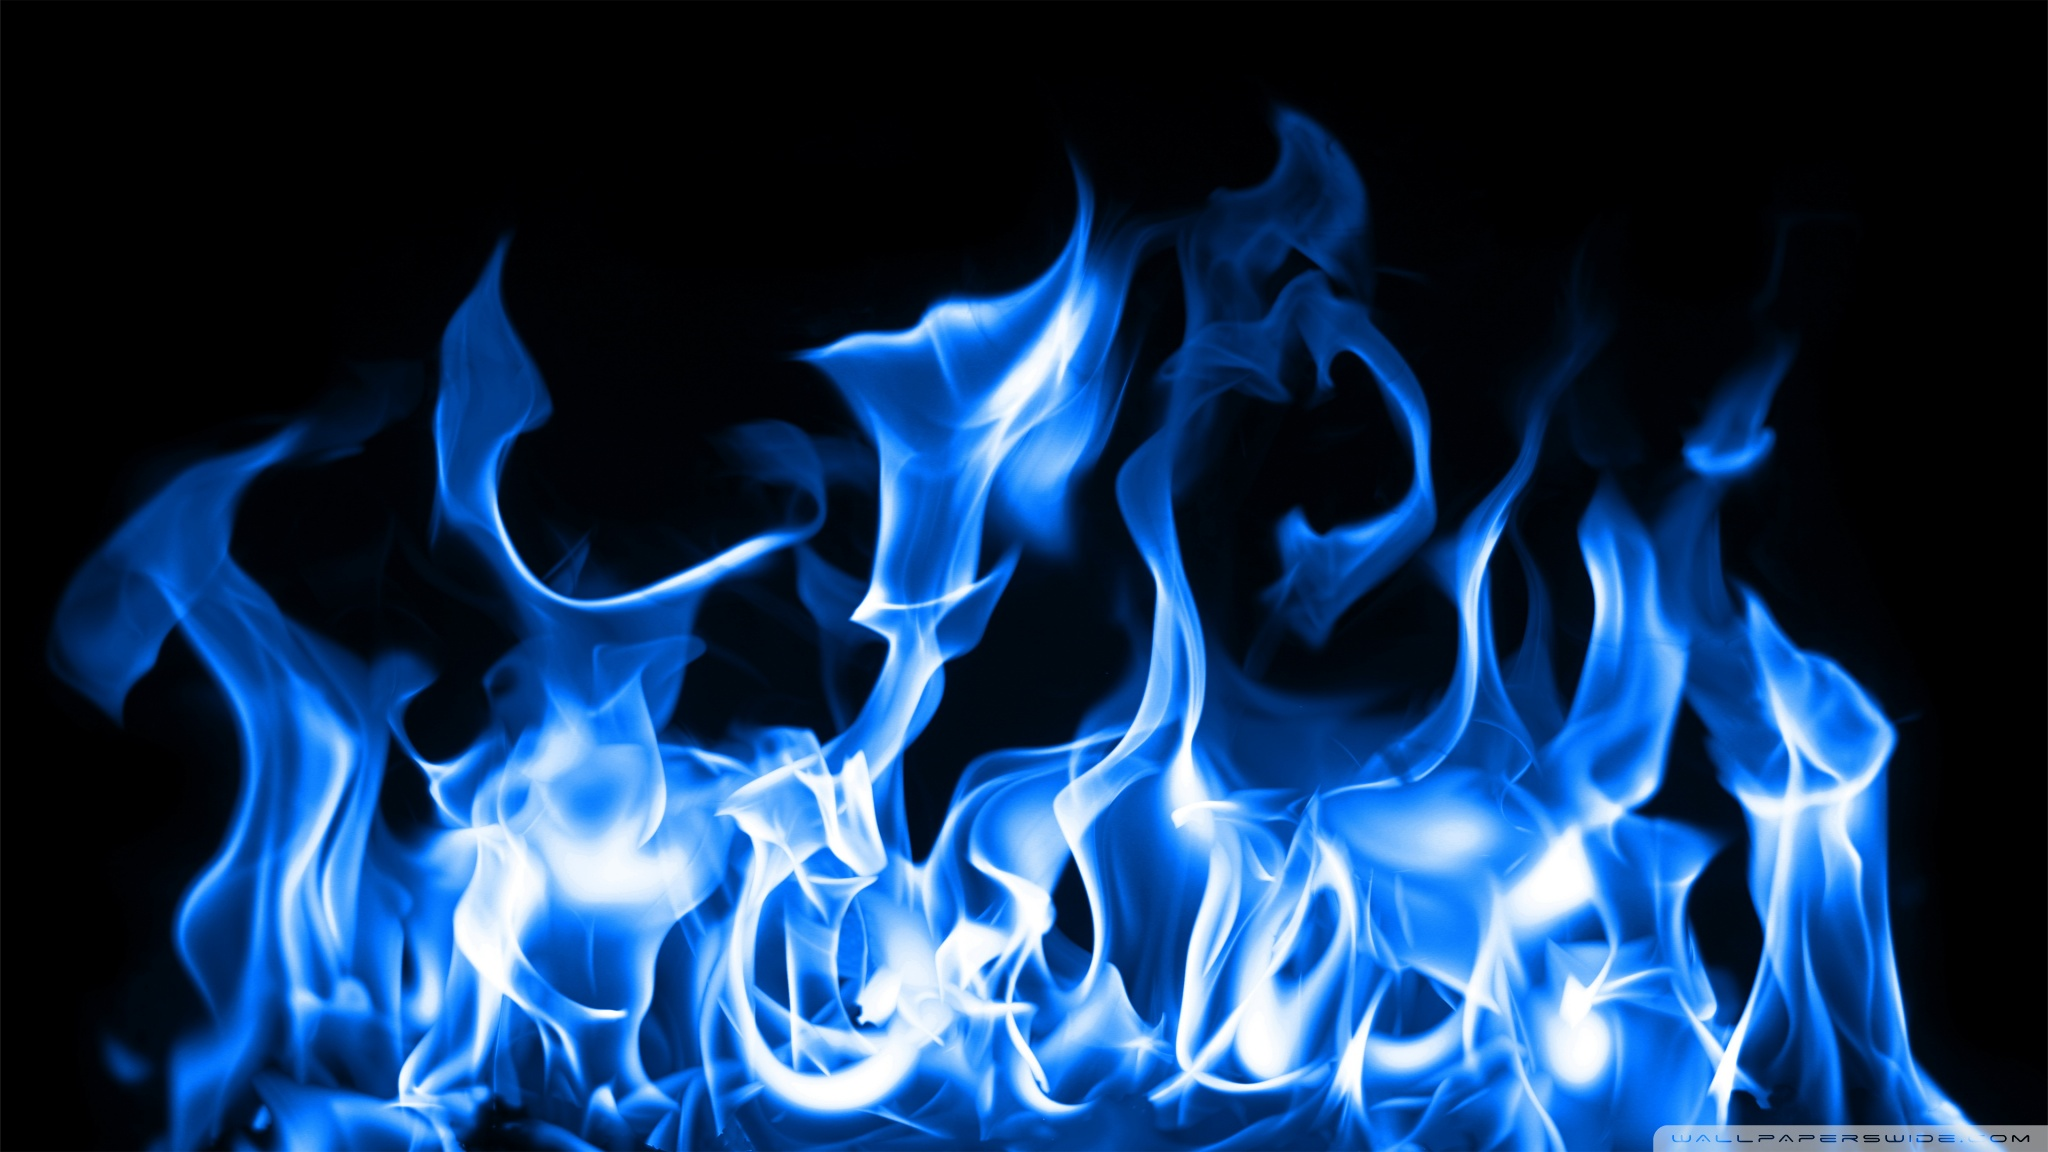 Fire Wallpaper 2048x1152 39764